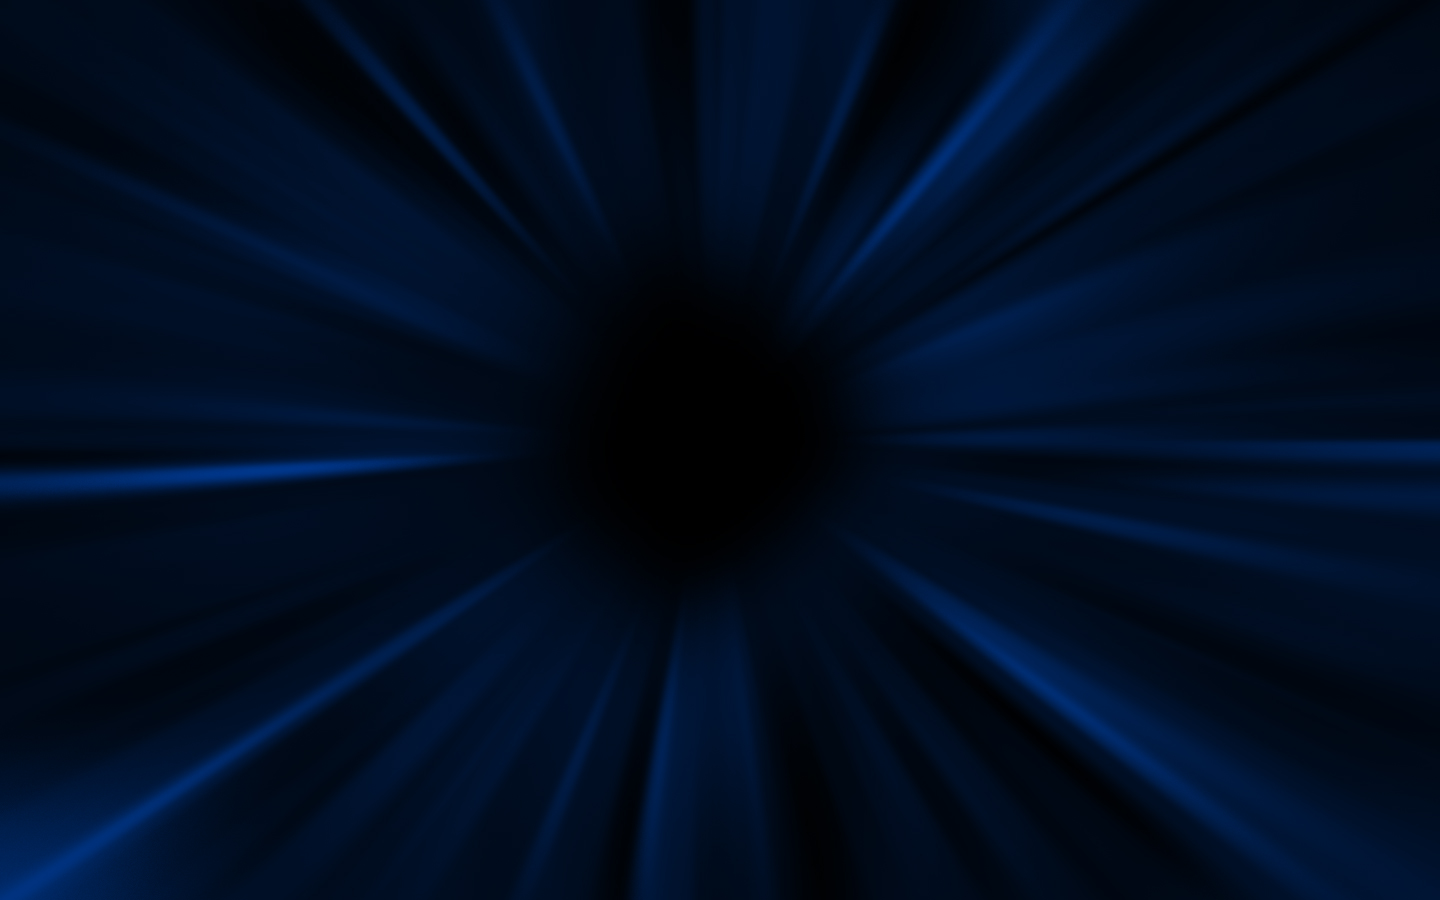 Dark Blue HD Wallpapers - WallpaperSafari Dark Blue Background Hd